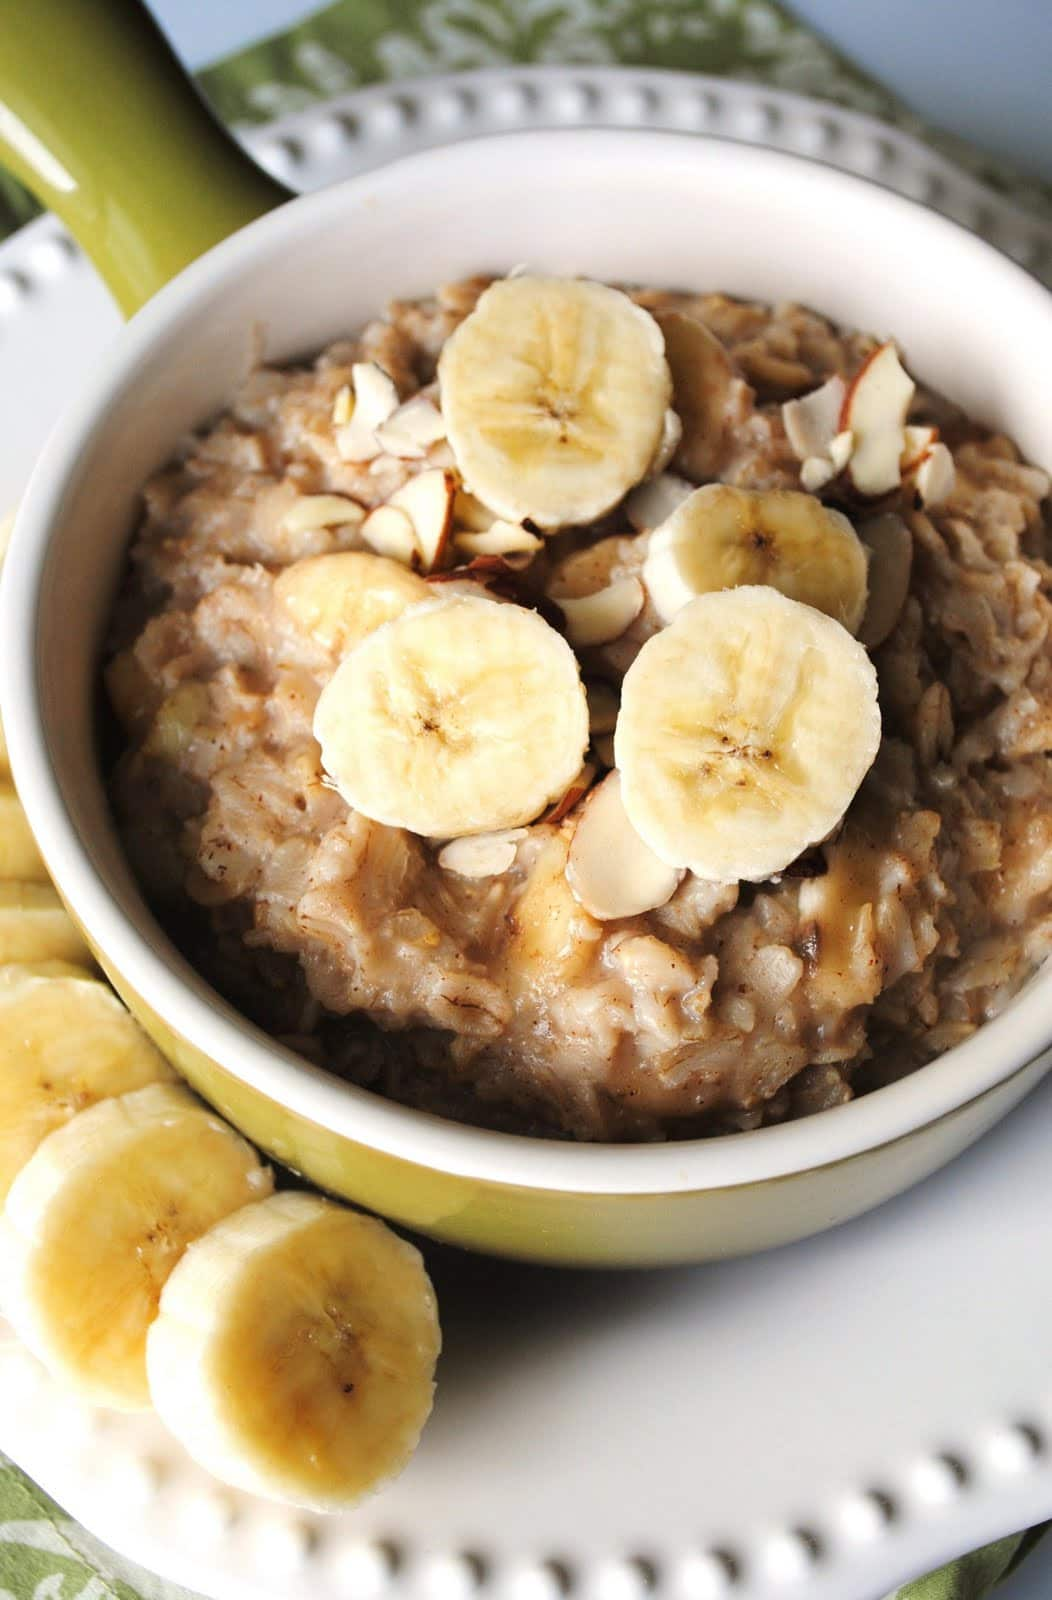 Dr. Fuhrman's Quick Banana-Oat Breakfast To Go